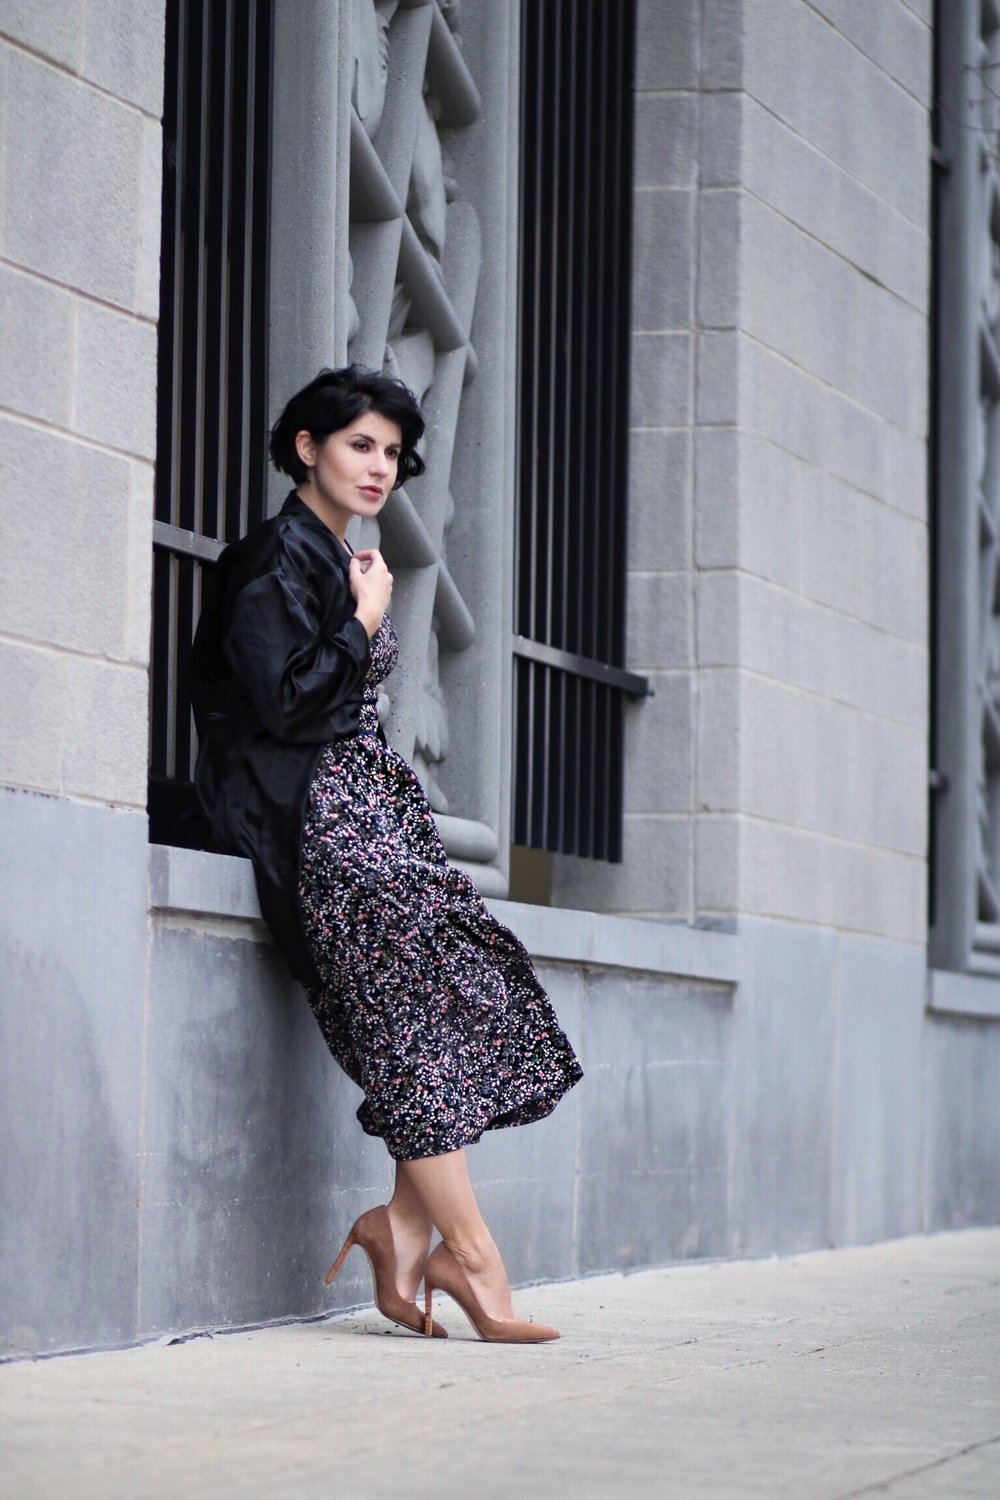 floral print dress streetstyle